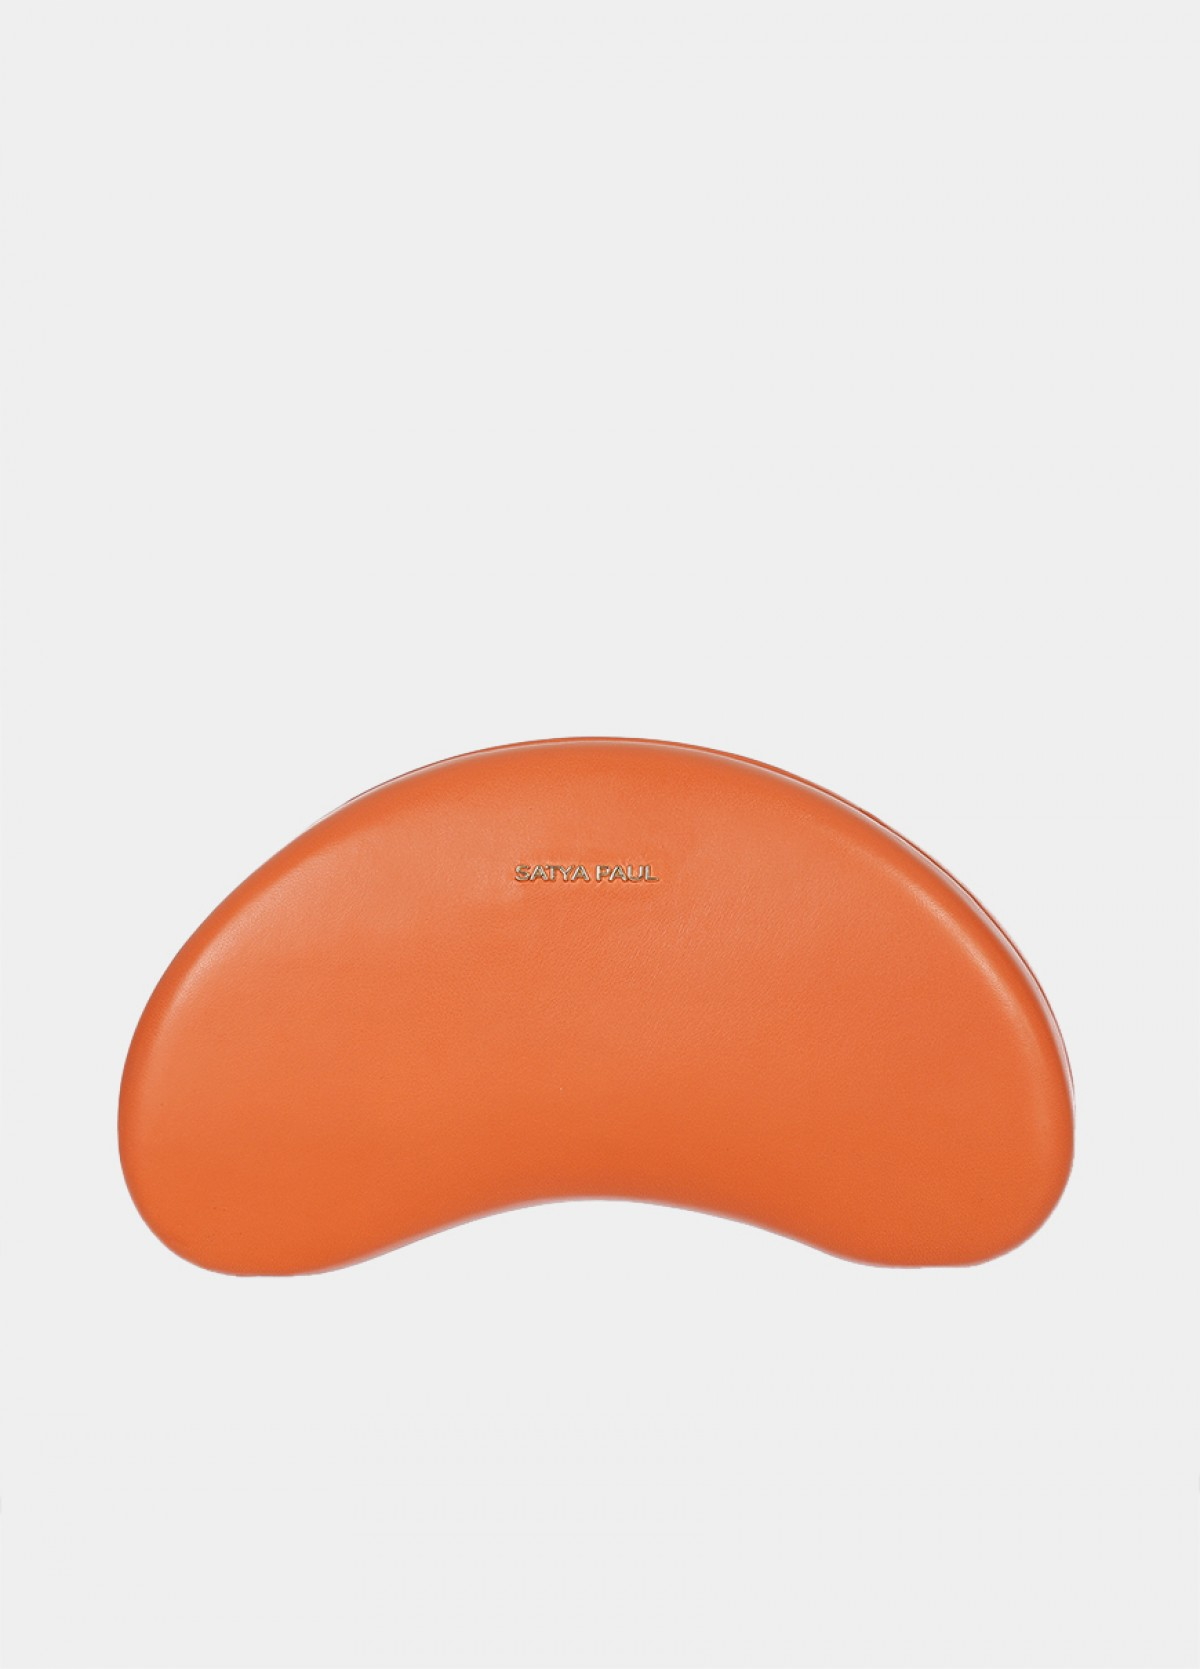 The Bean Leather Clutch